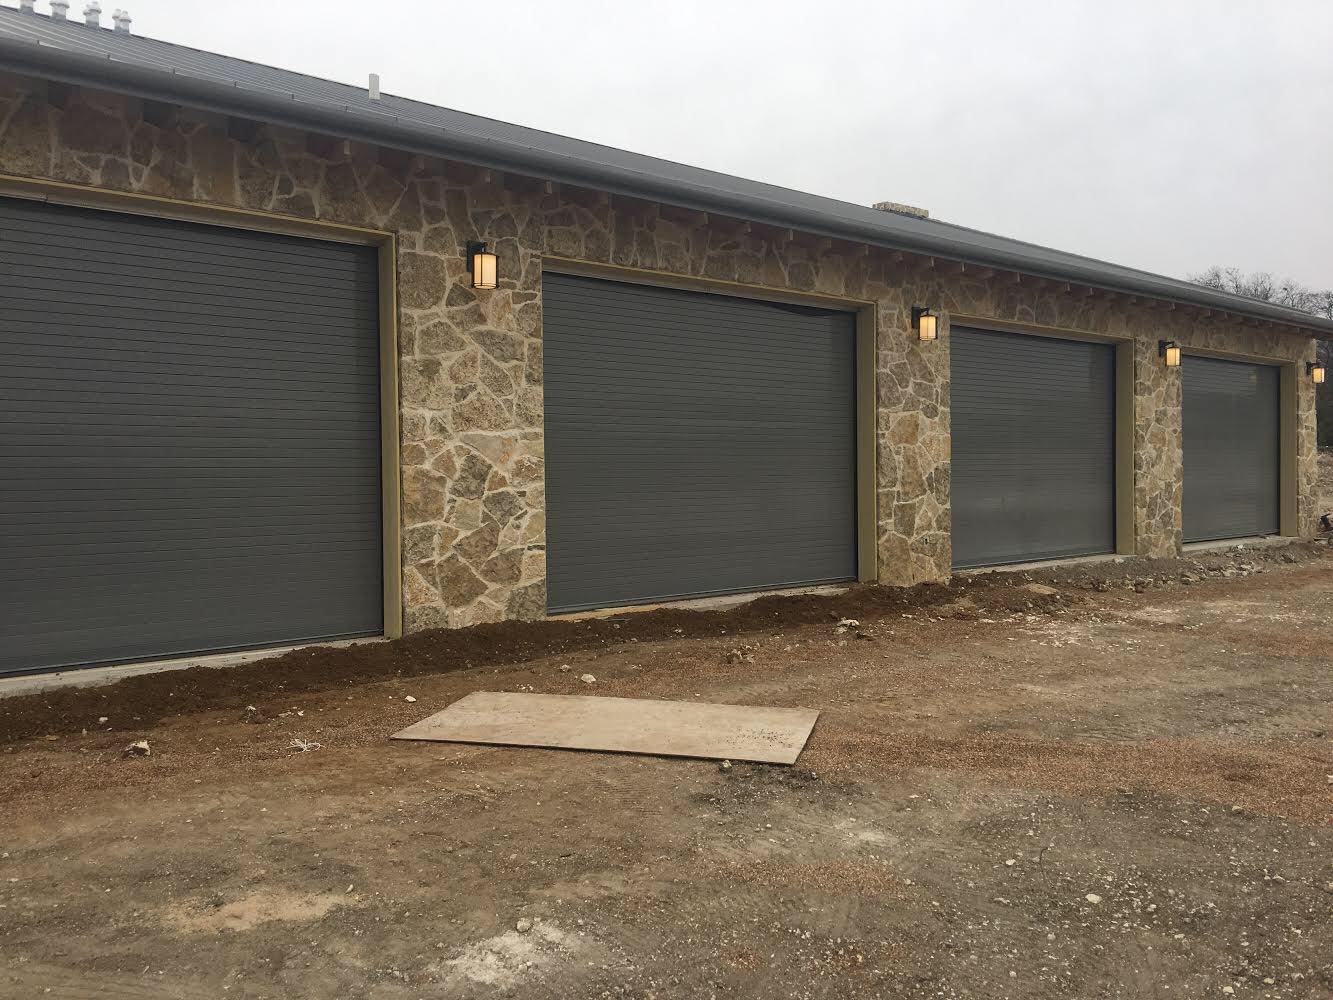 Rolling Doors - Service doors provide security against entry as well as protection from weather at exterior and interior openings in industrial, commercial, institutional and other buildings. These doors are made from slats of formed galvanized steel, aluminum or stainless steel that roll up to store in a coil above an opening.